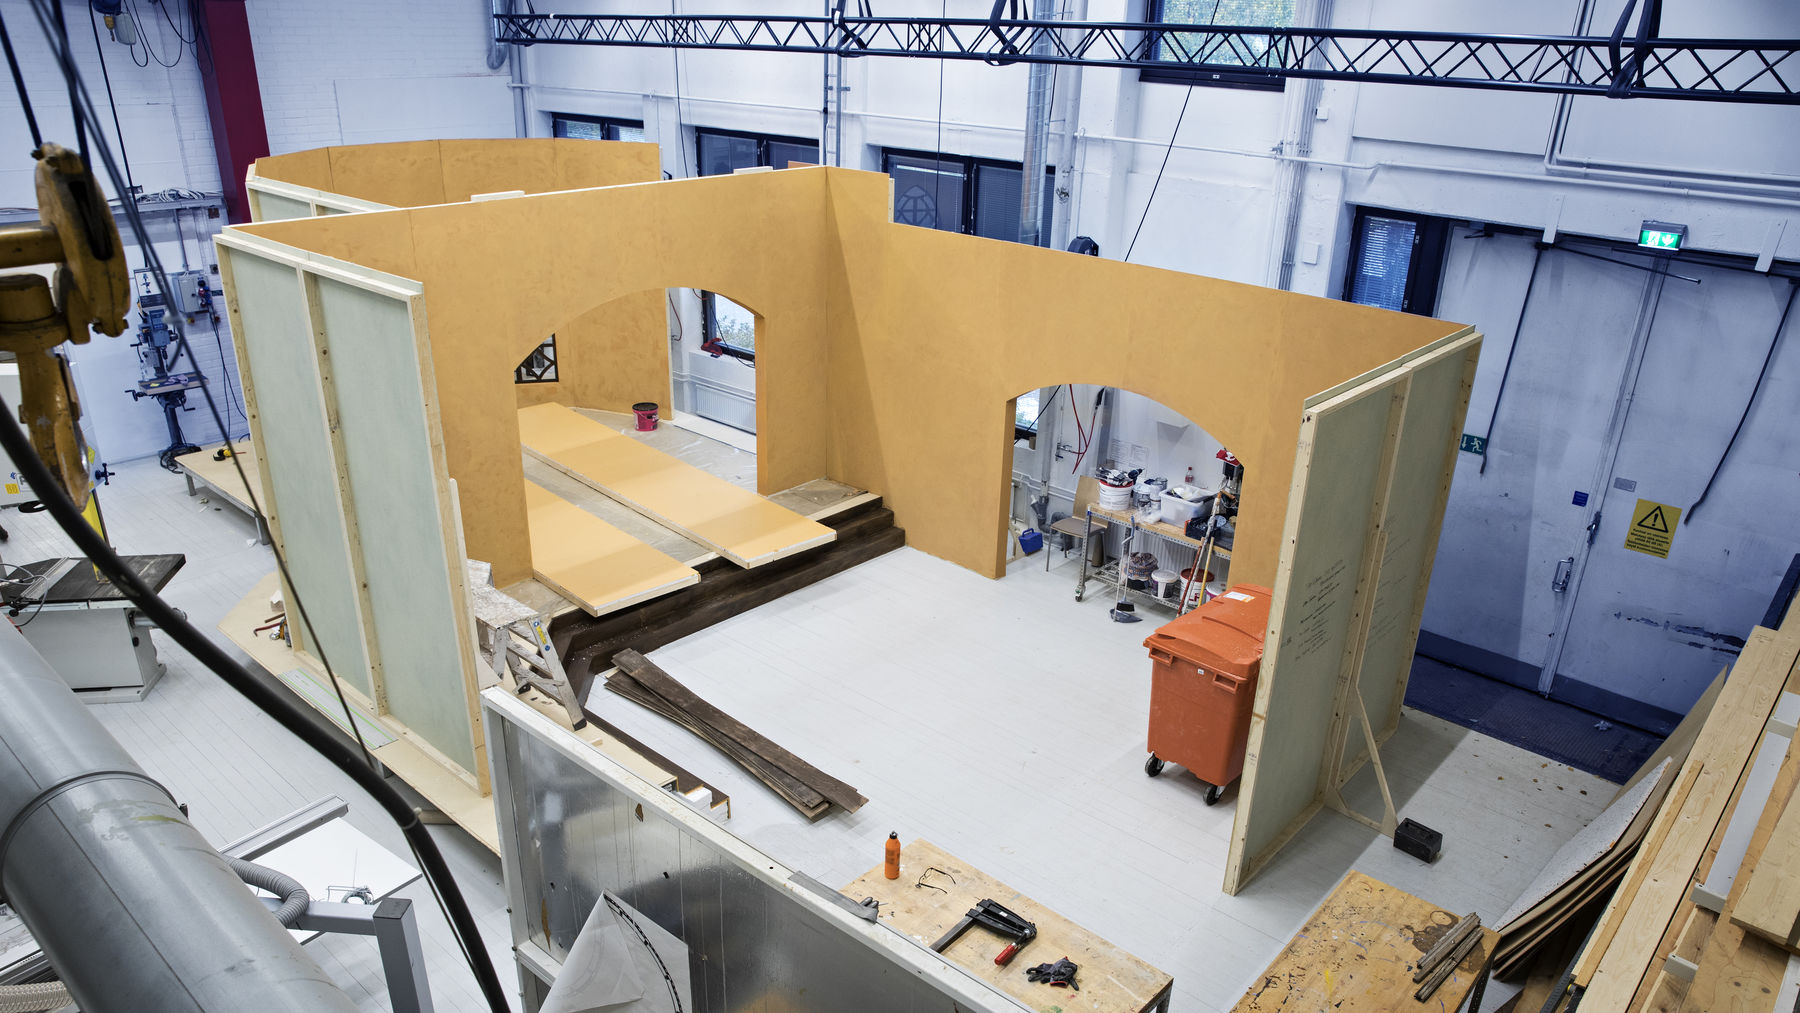 Build, weld or paint in a large, multi-purpose space